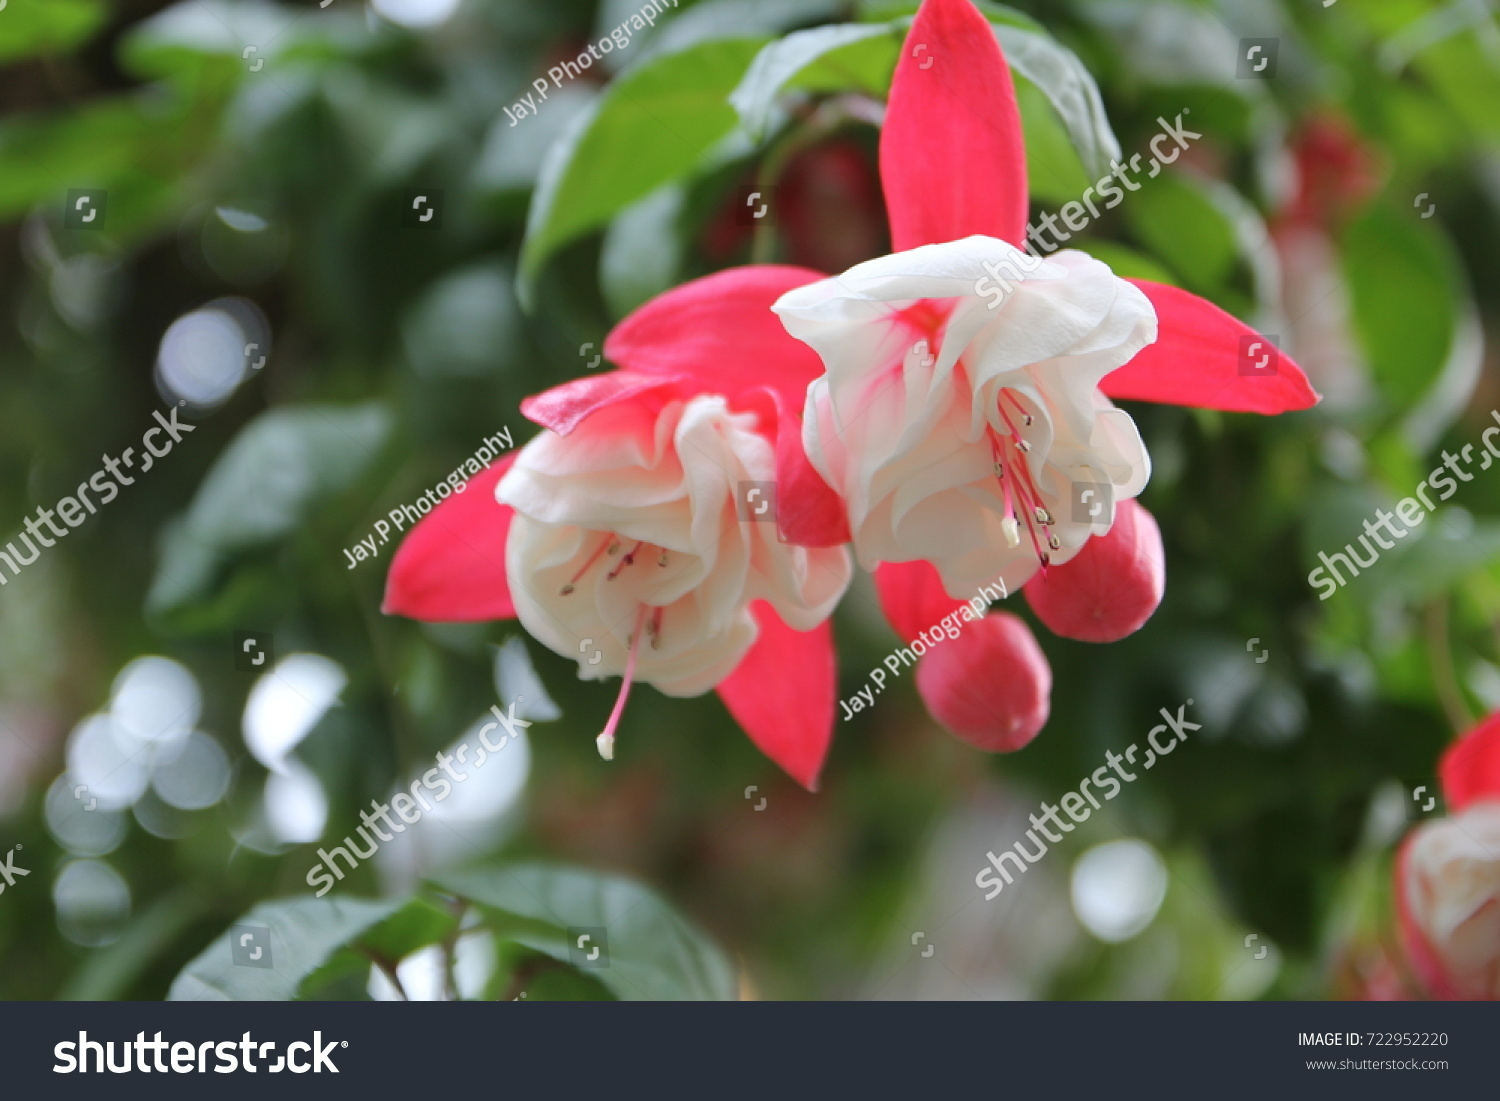 One most beautiful flowers begonia garden stock photo royalty free one of the most beautiful flowers in begonia garden of nabana no sato flower park in izmirmasajfo